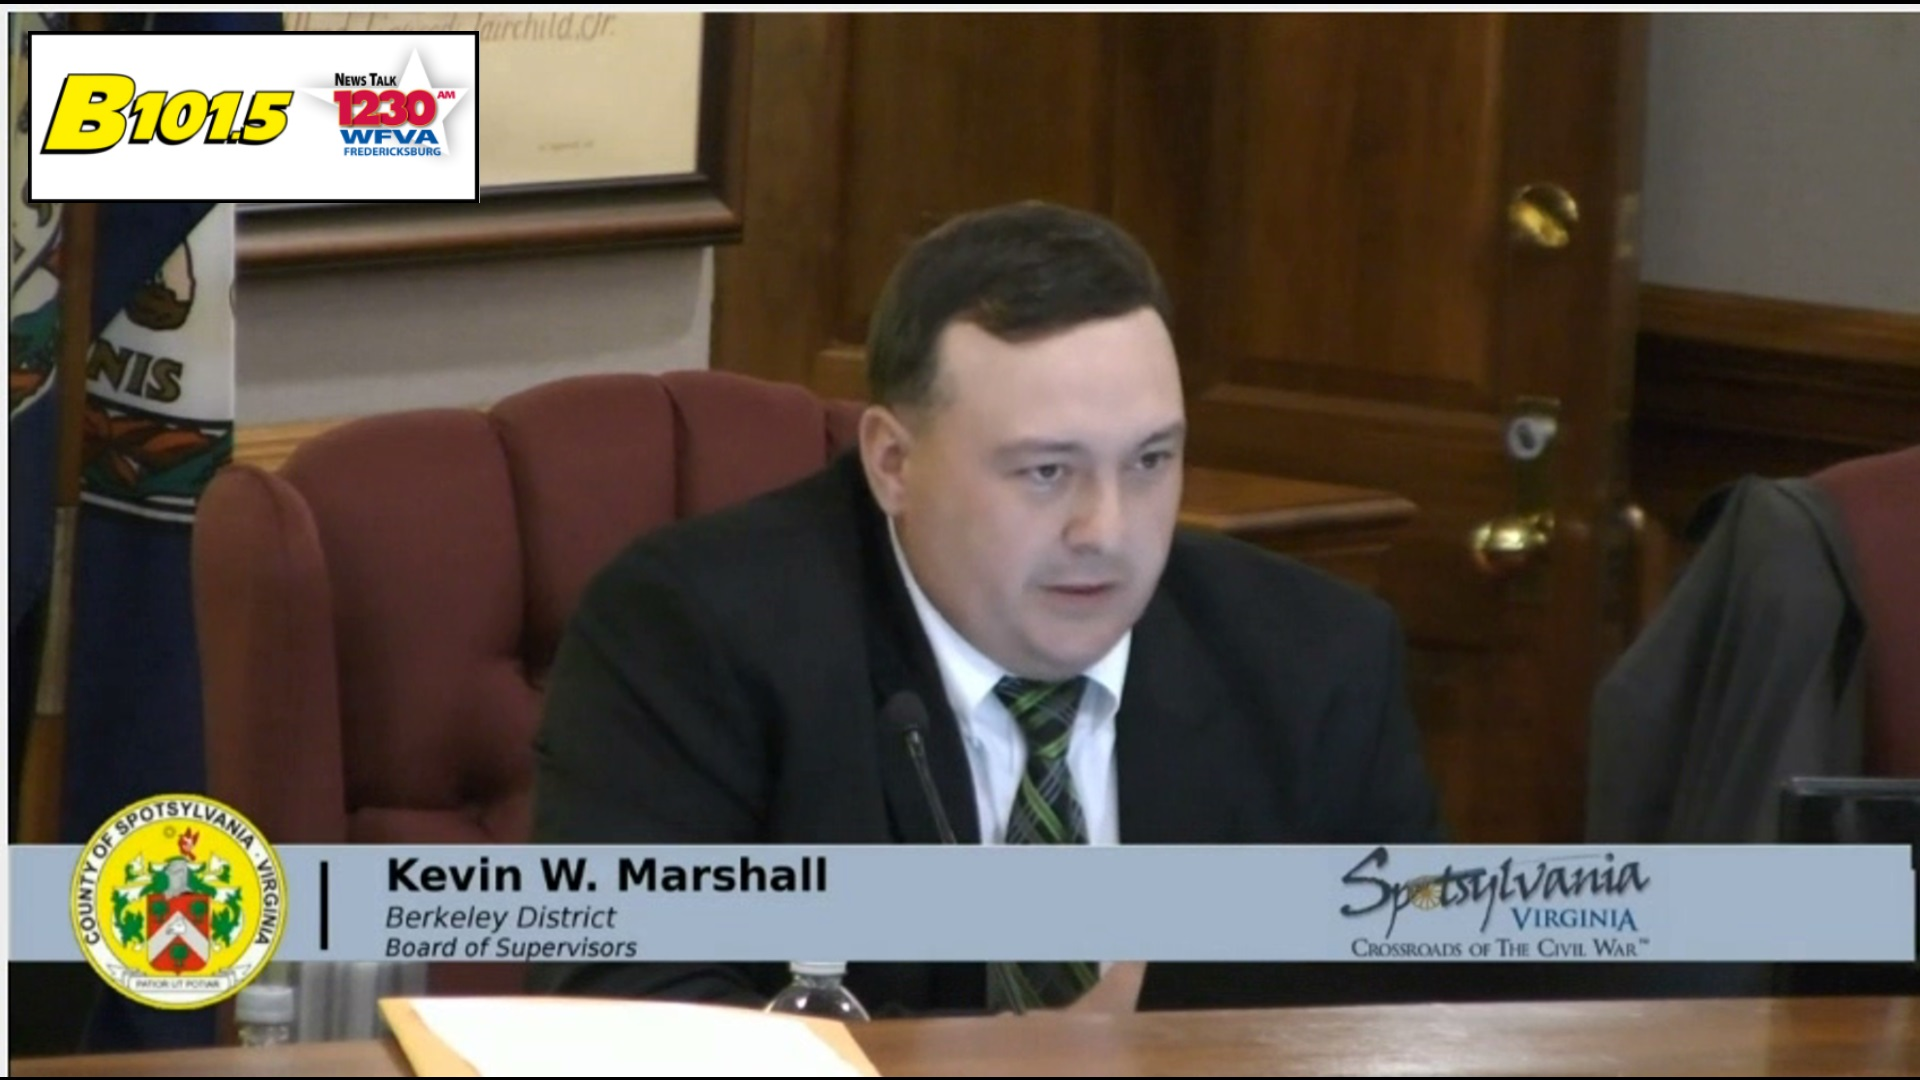 Spotsy employees cannot be on Board of Supervisors.  Marshall grandfathered